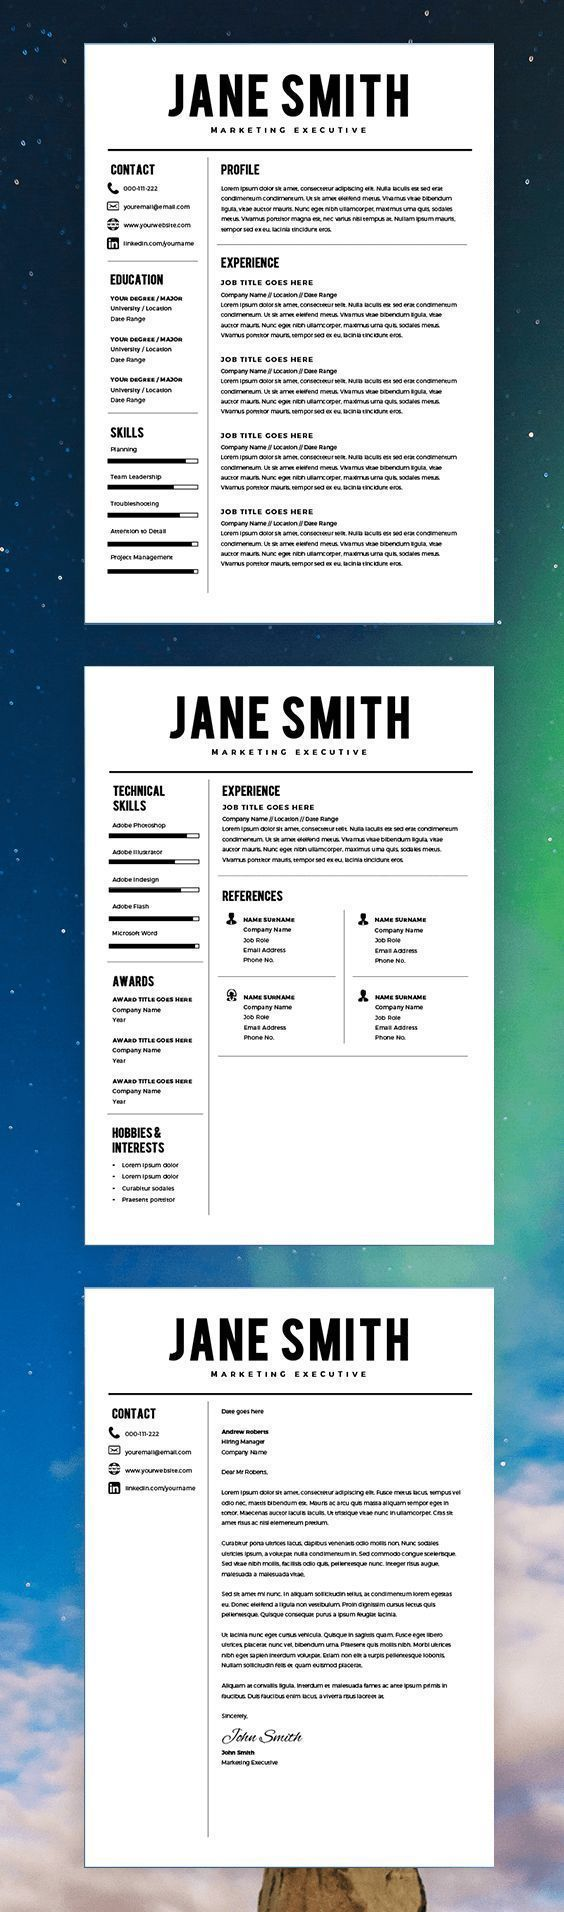 Best Resume Template - CV Template - Free Cover Letter - MS Word on Mac / PC - Professional Design Best Resume Templates - Instant Download